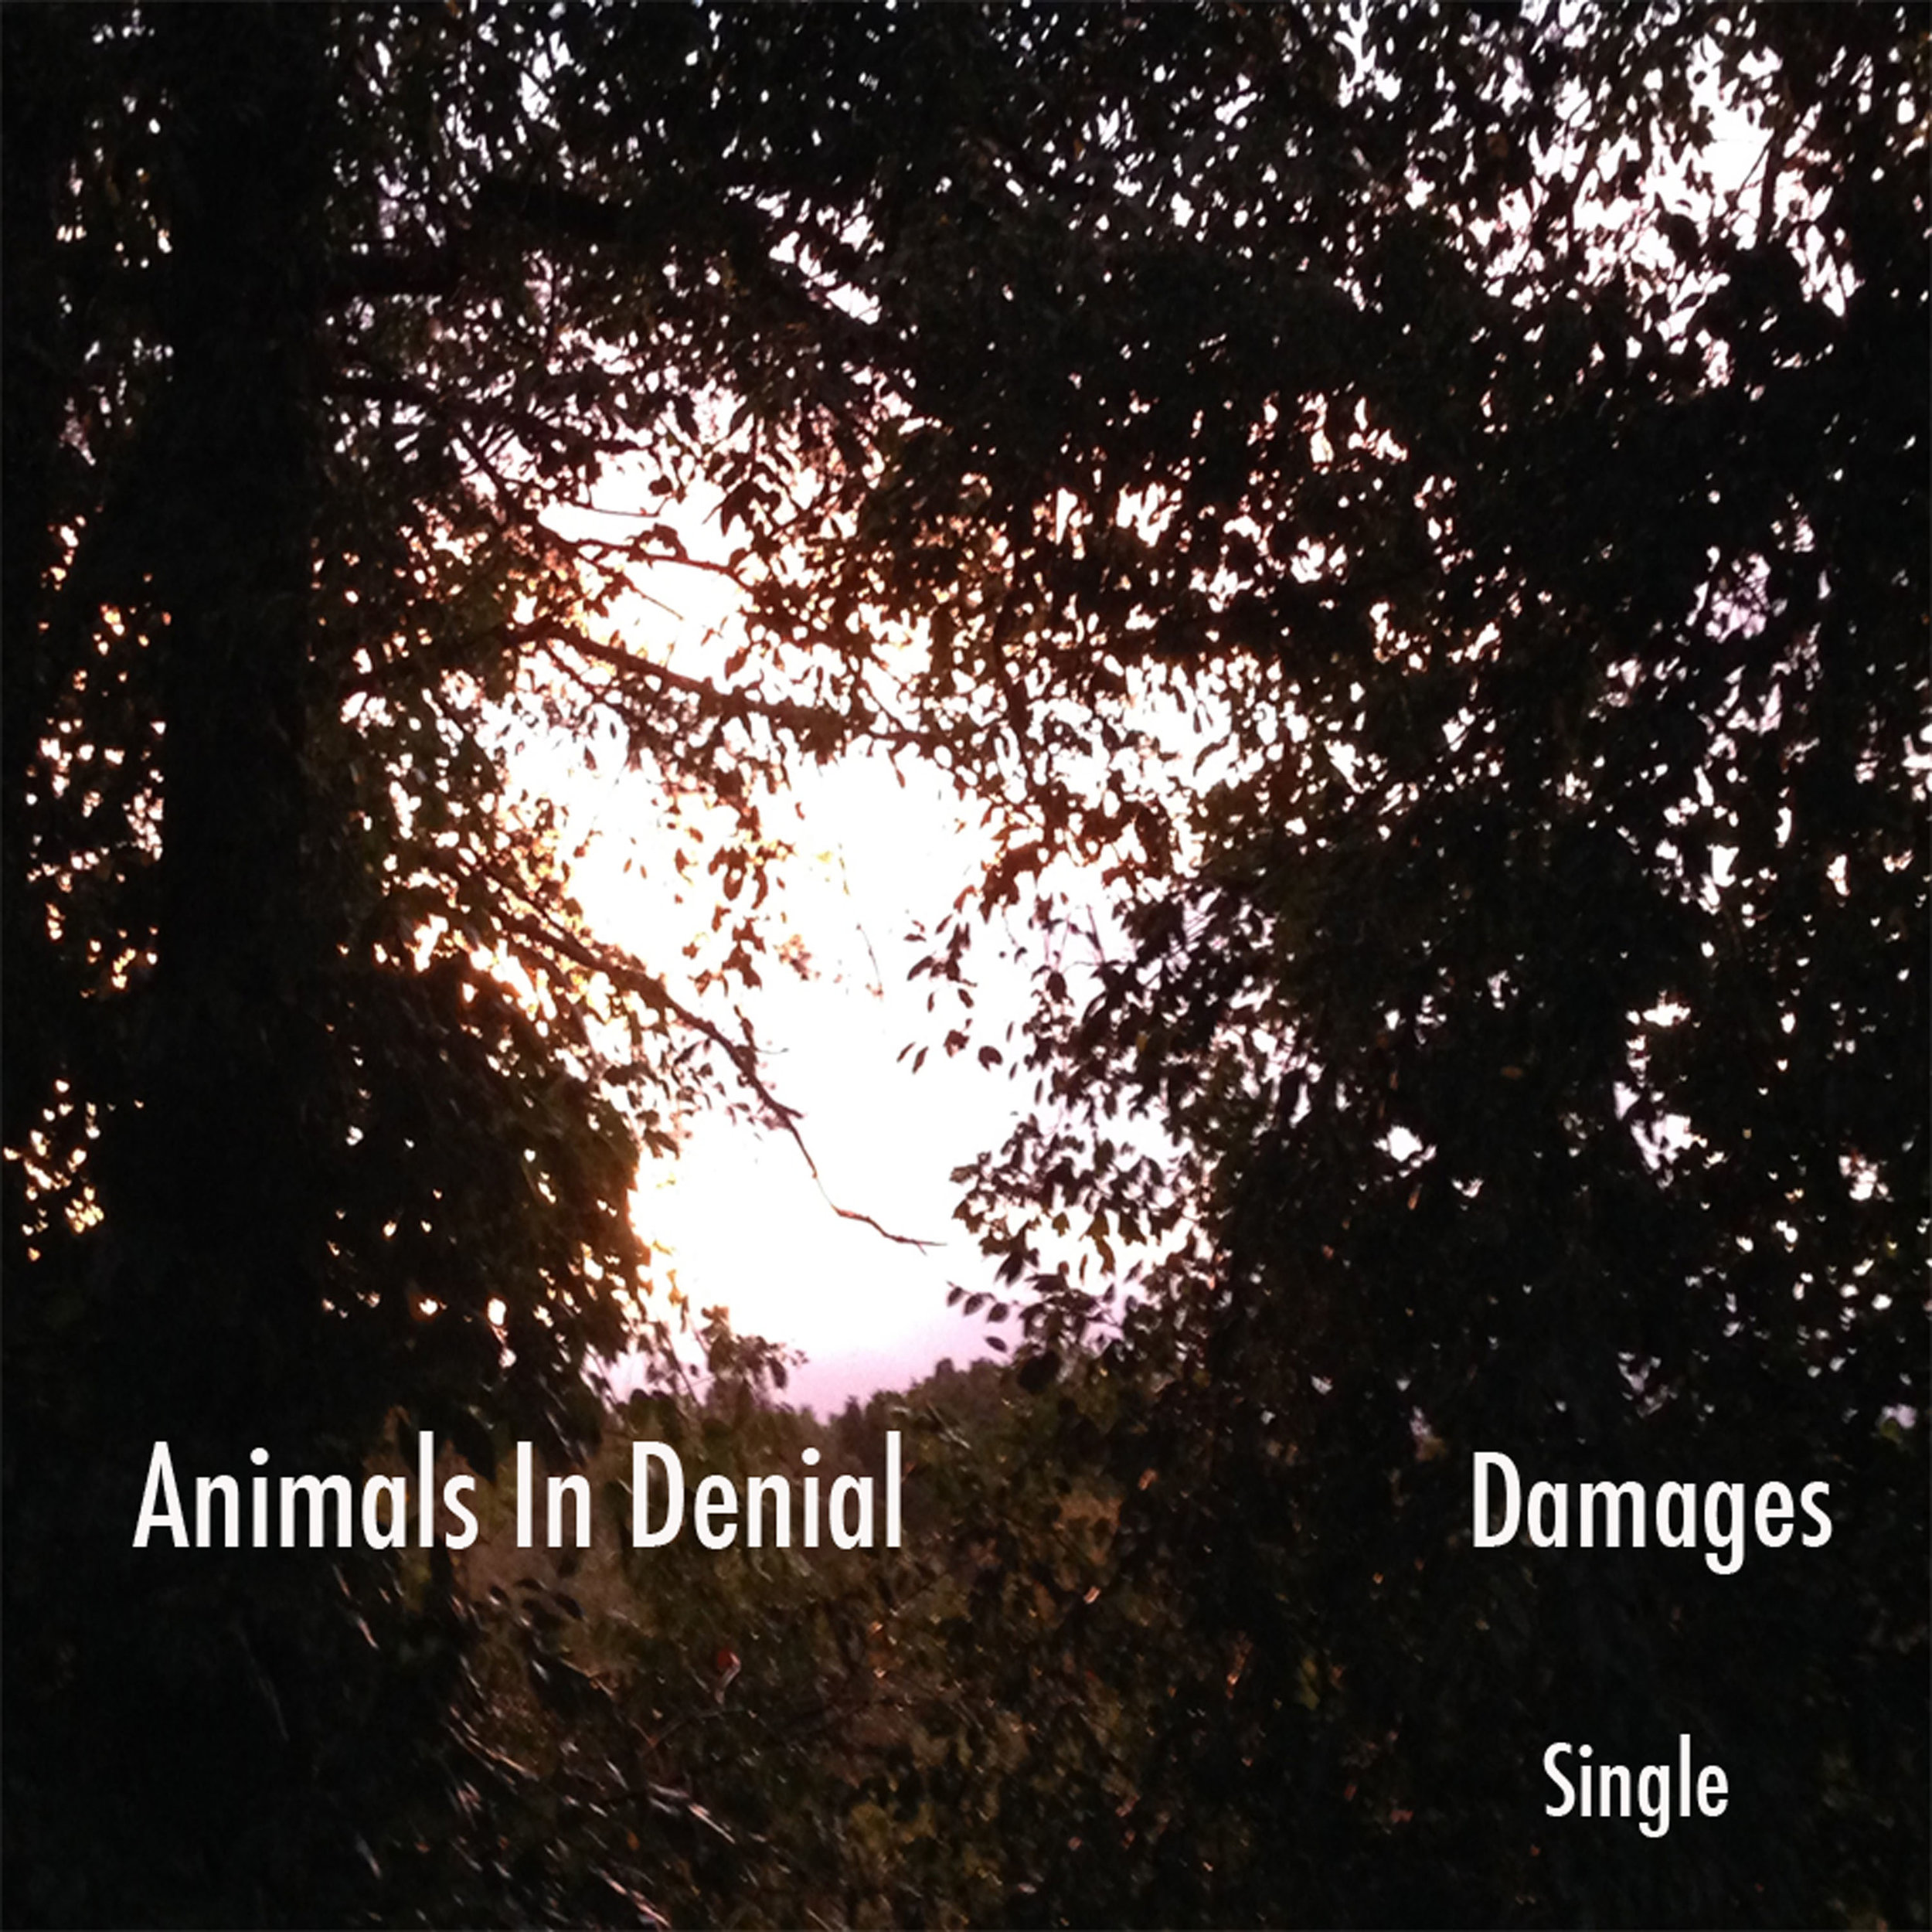 Damages-Single-Cover-2bc.jpg